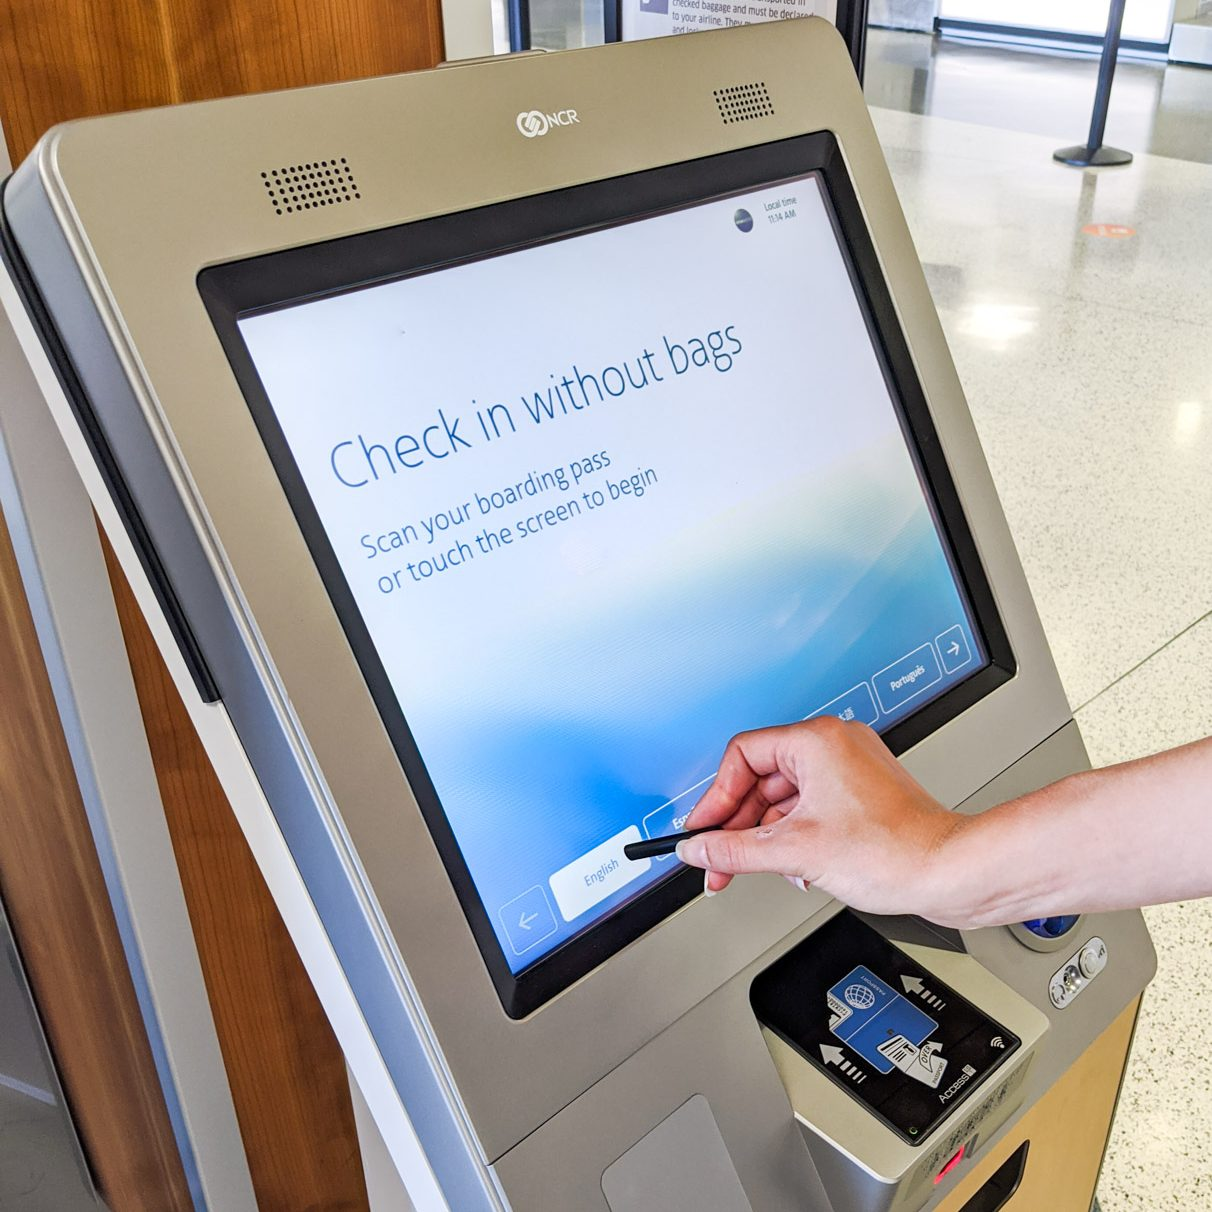 airport, airport kiosk, safe from viruses, ppe, kiosk, stylus, touchscreen, touchpad, travel, traveling, check-in kiosk